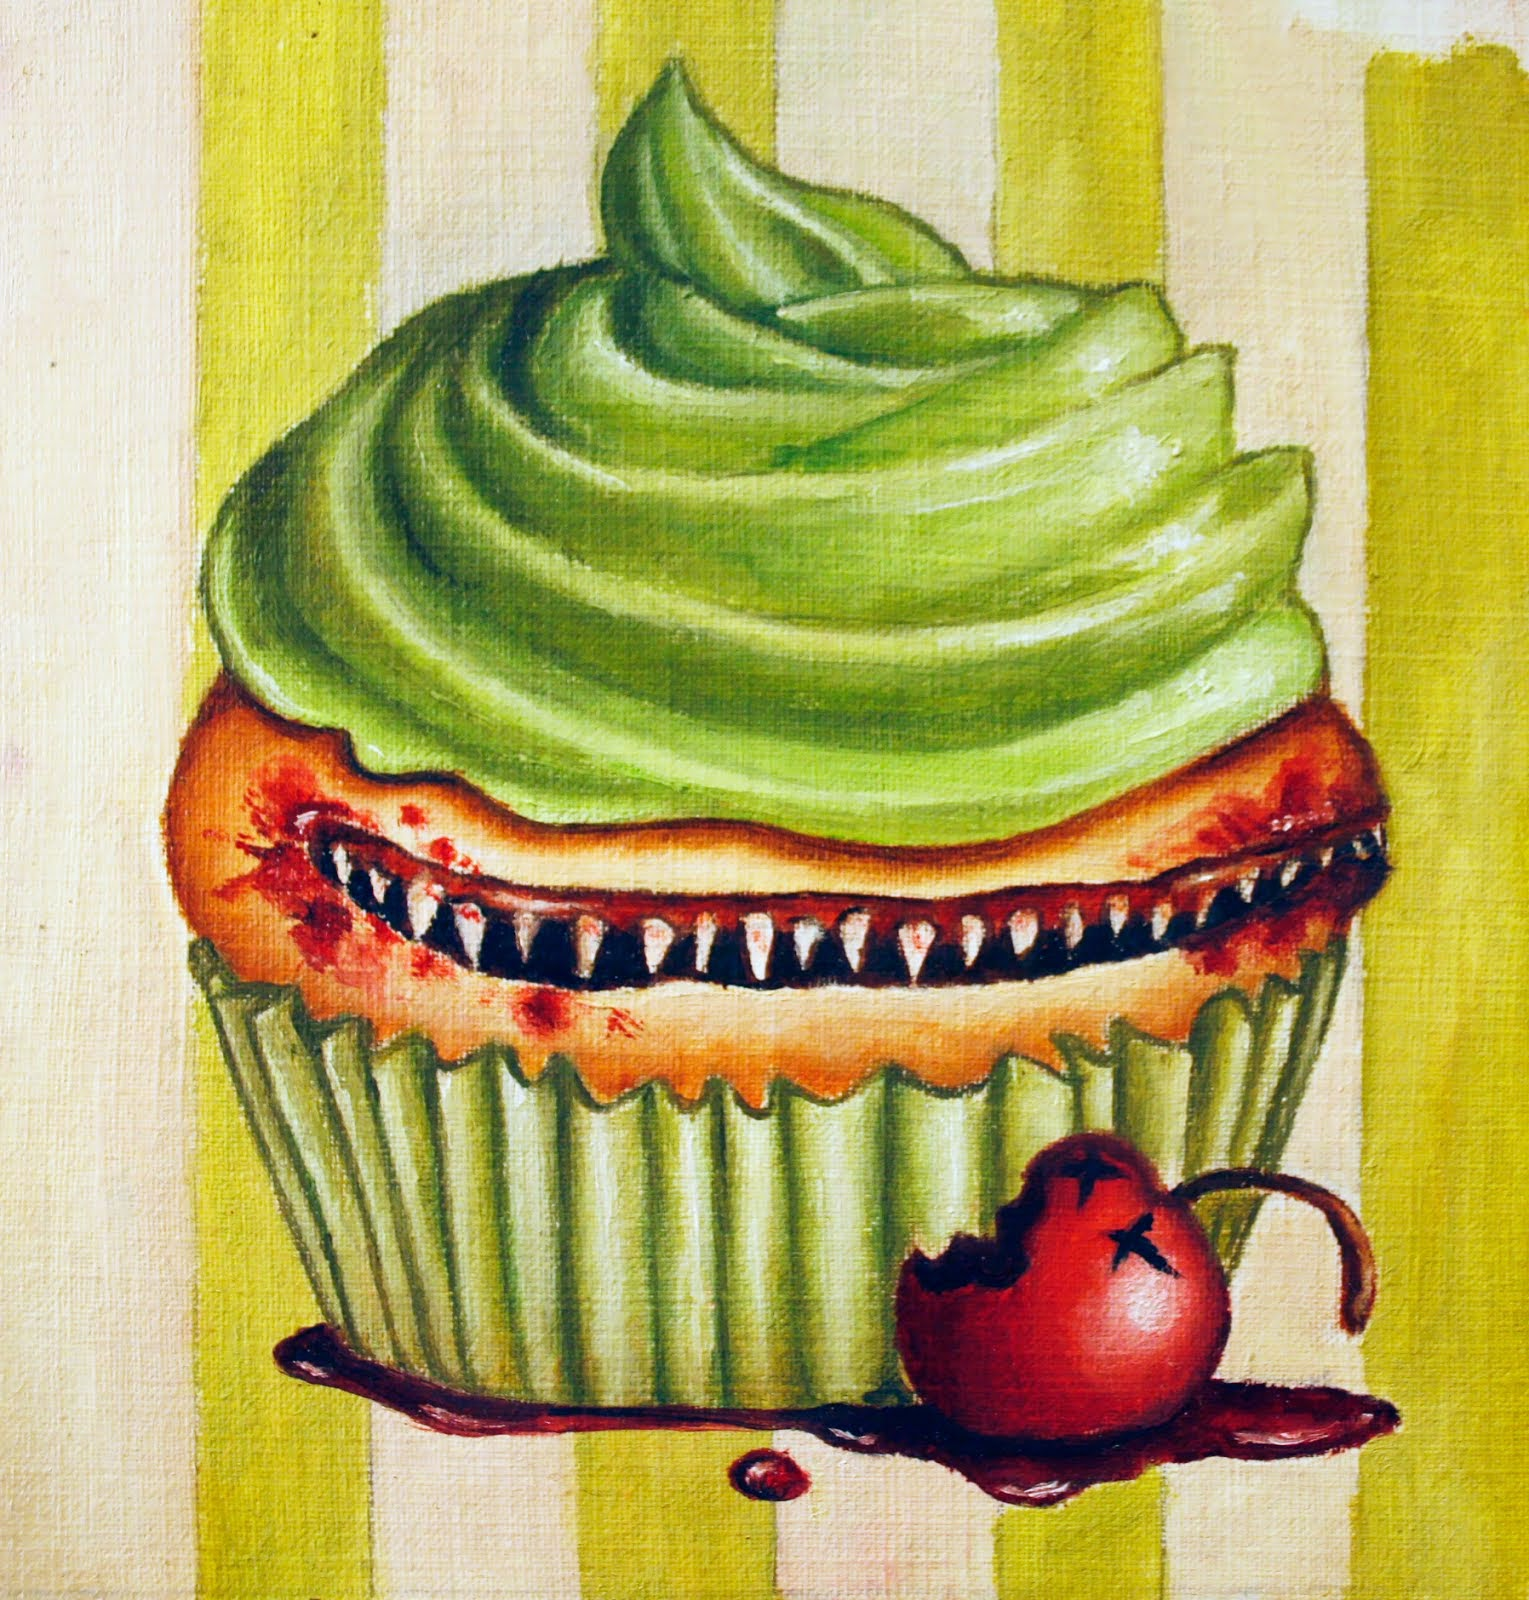 Monster cakes (muffin)